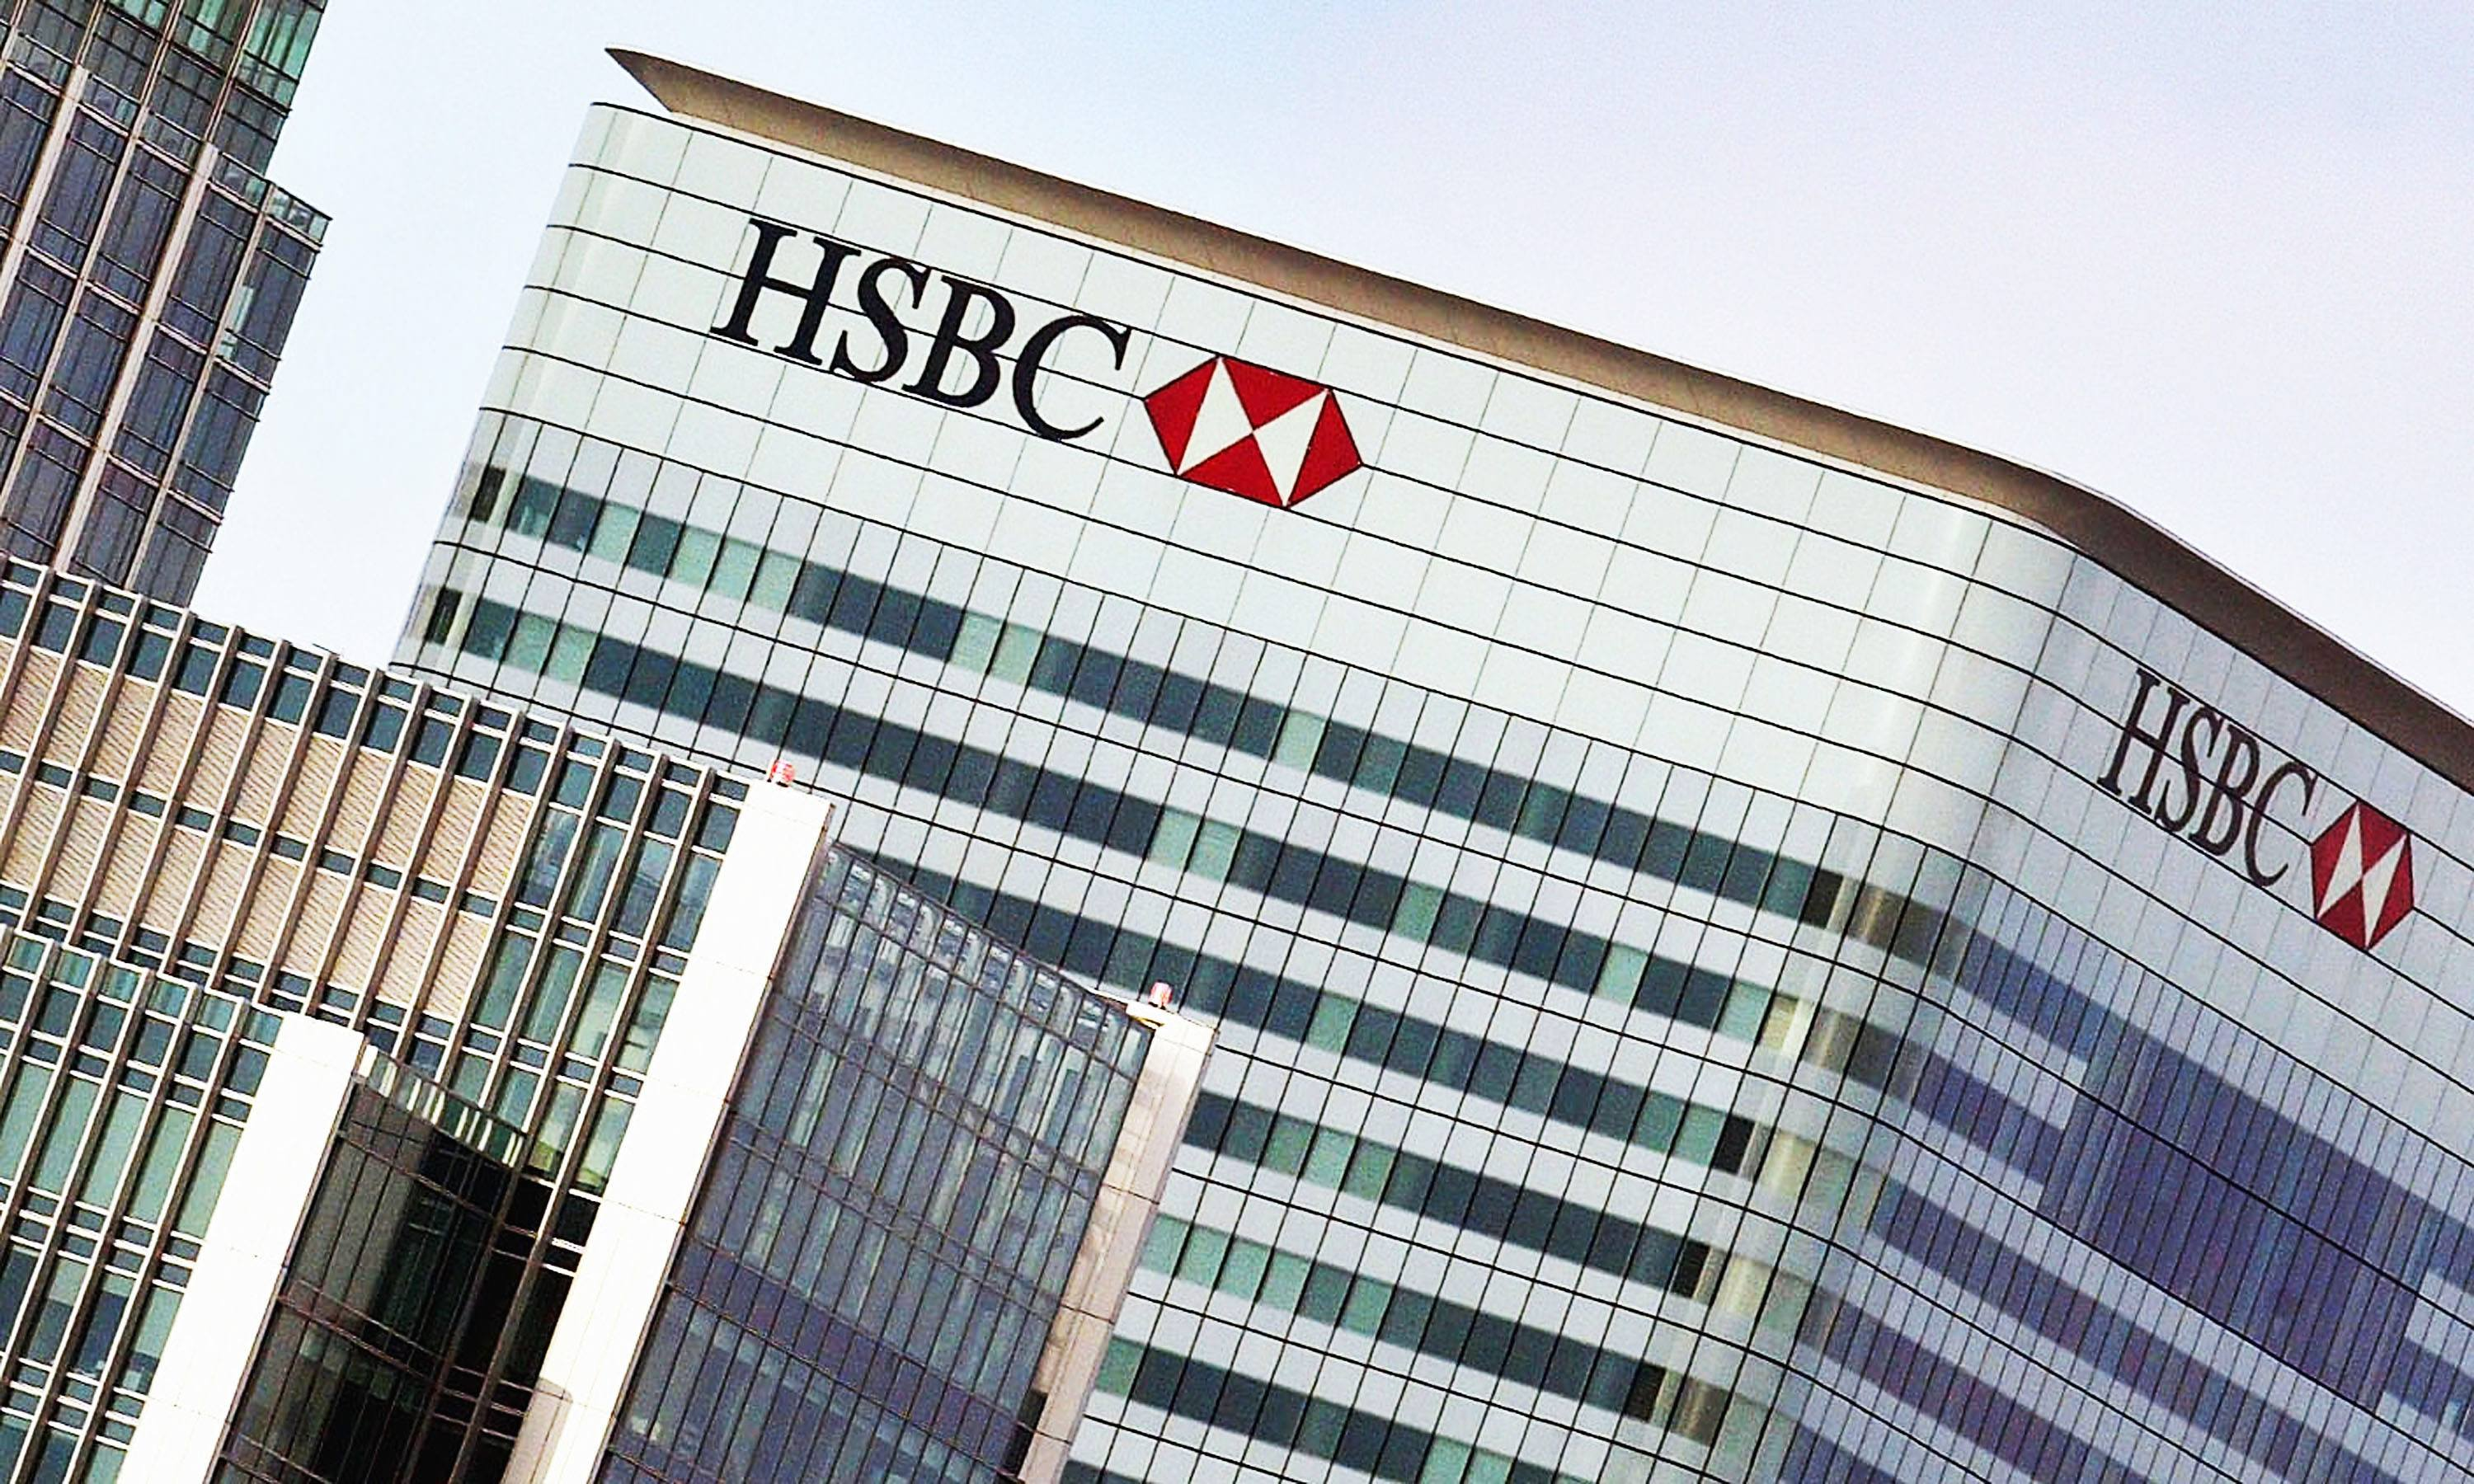 HSBC bank in London